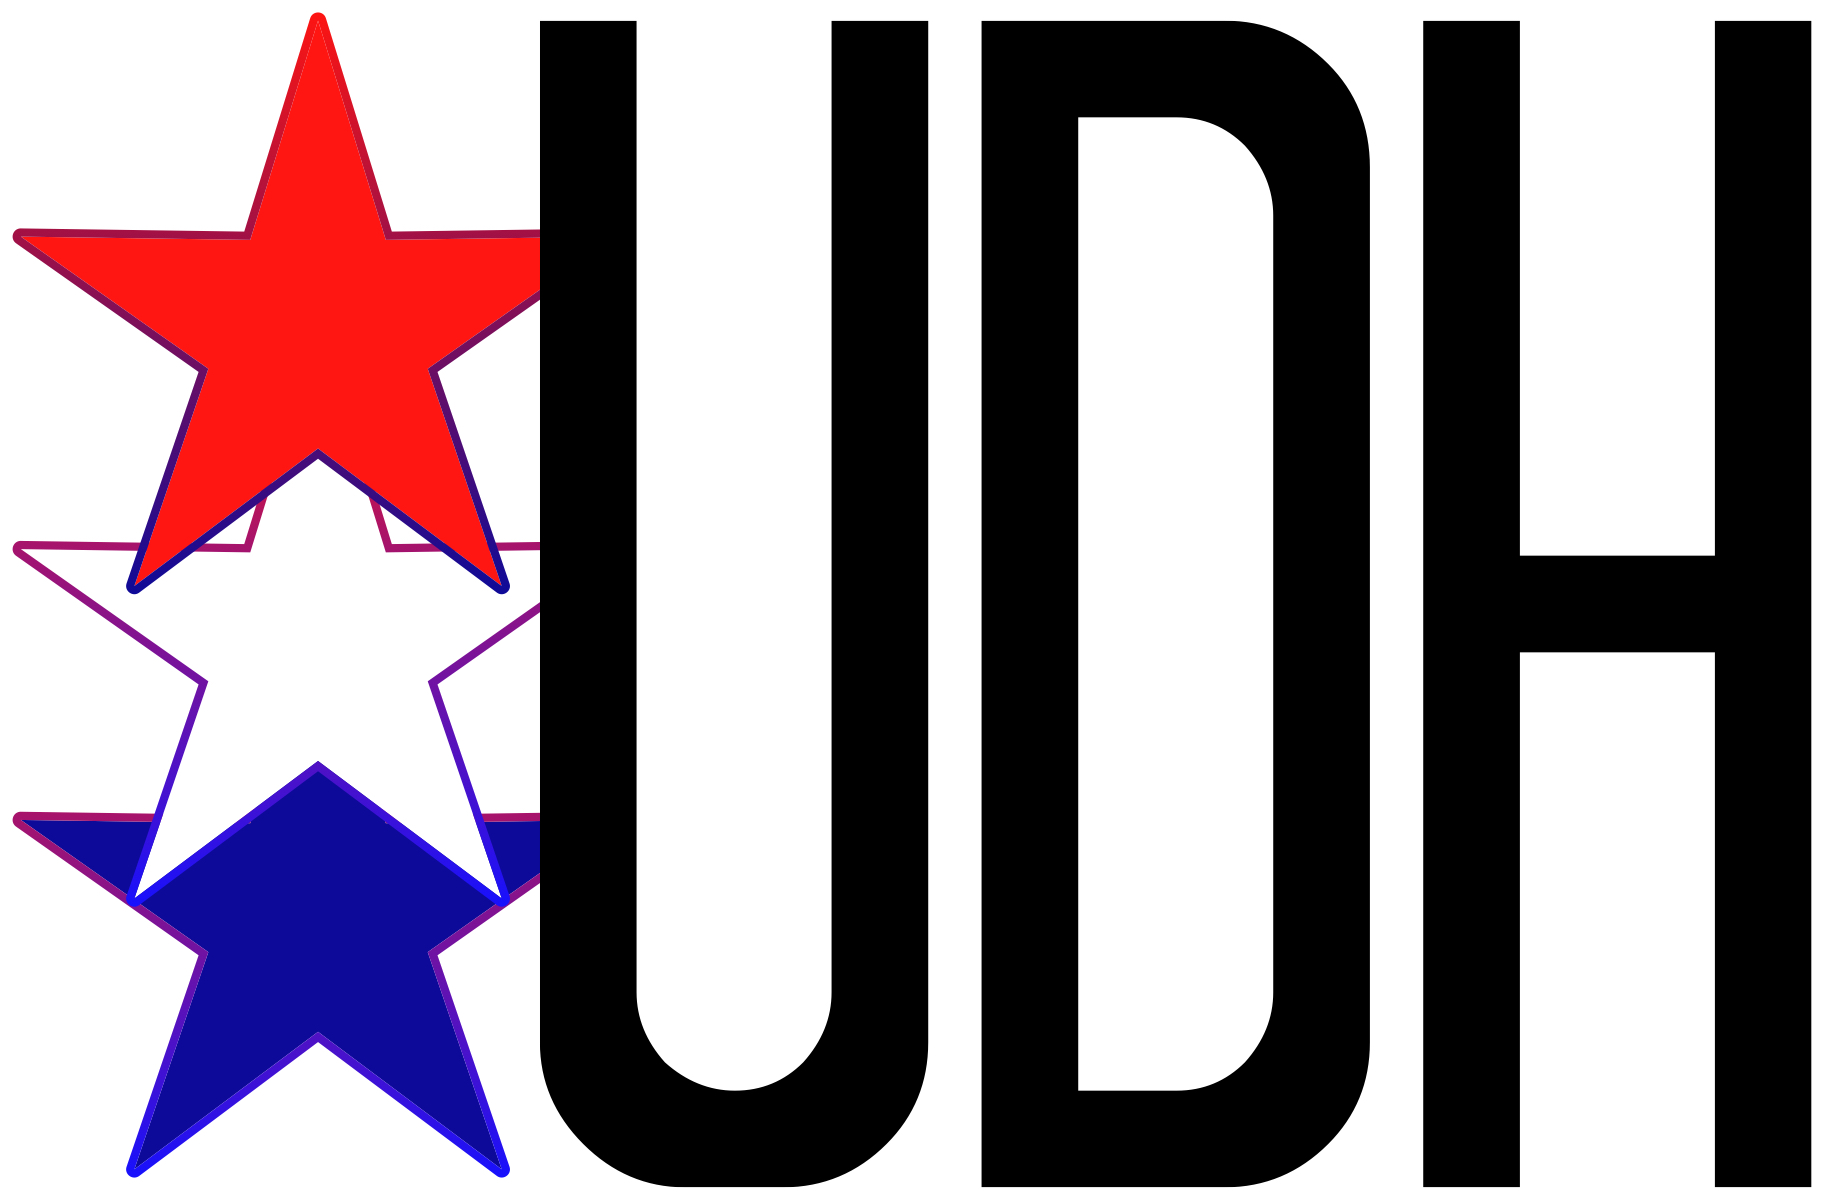 UDH_Short_Logo_Version_Black_2.jpg